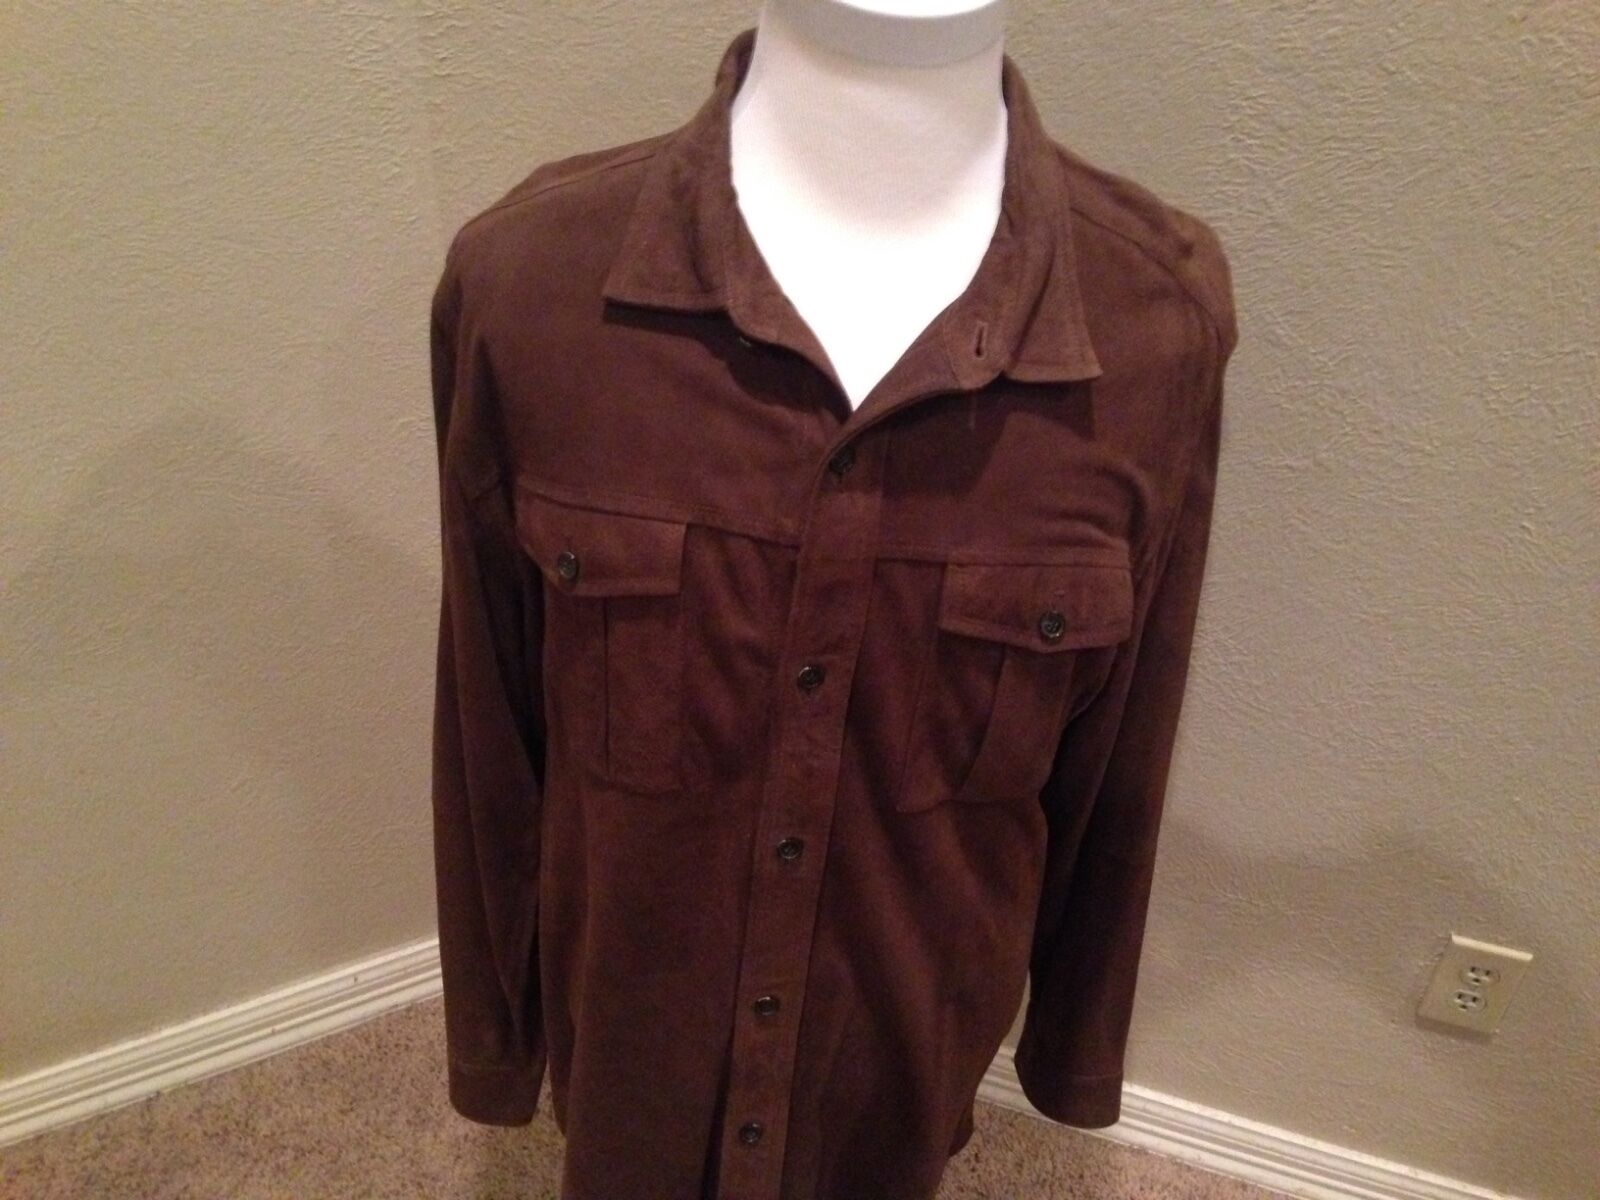 NEW 1295 Faconnable Suede Shirt XL